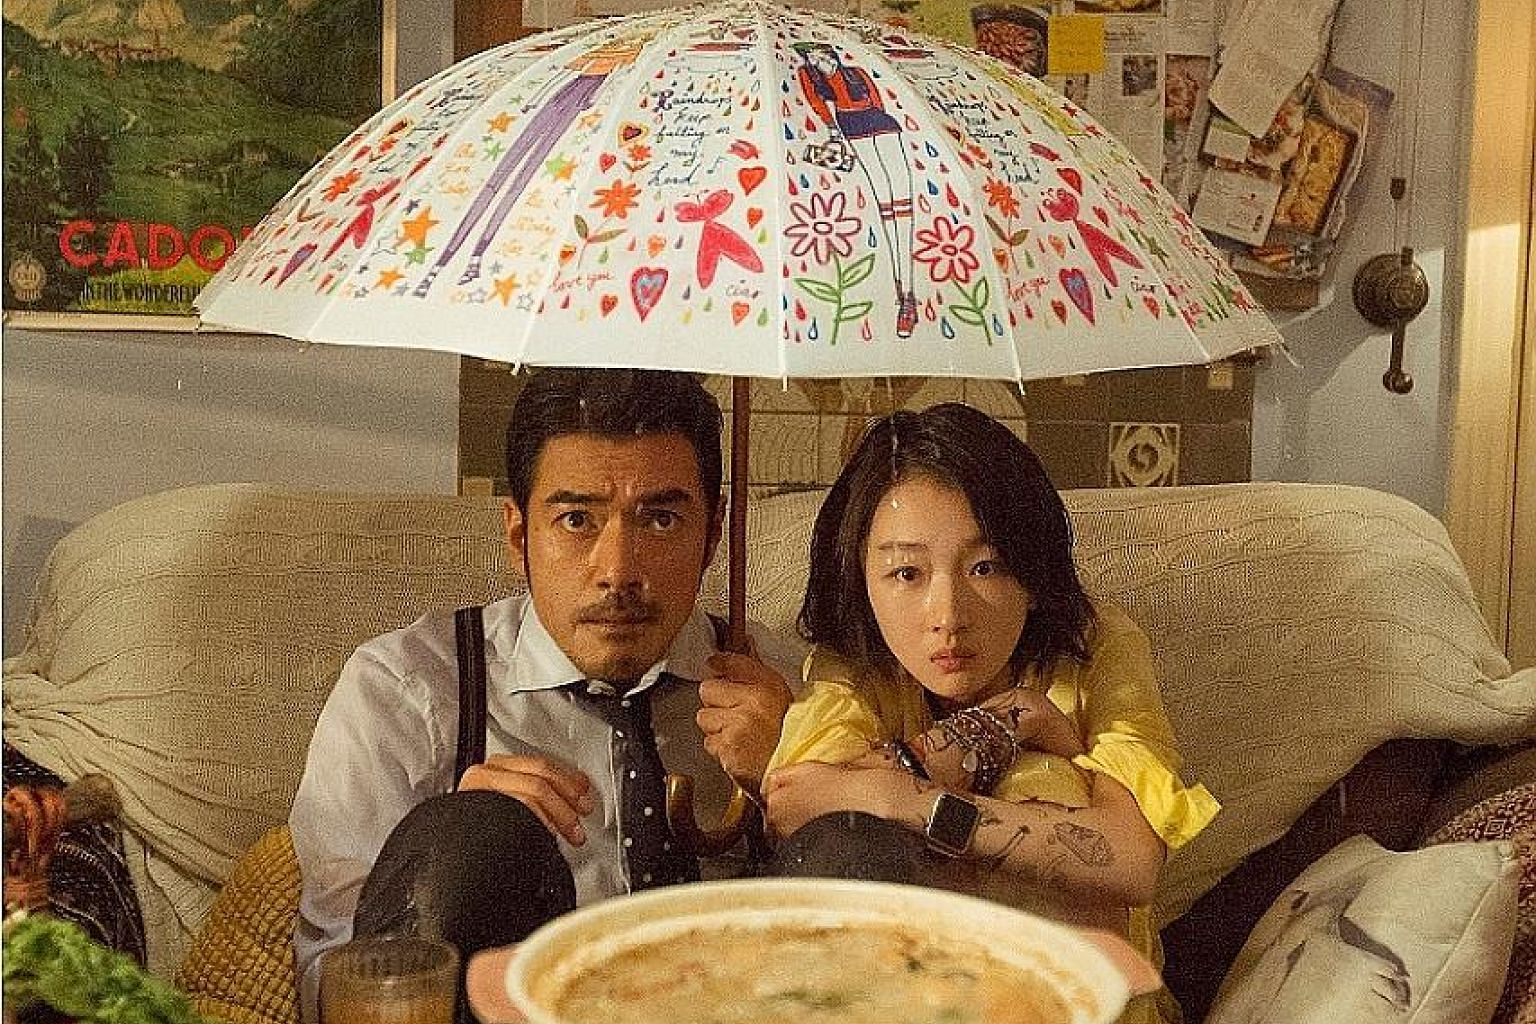 Takeshi Kaneshiro is the difficult-to- please foodie tycoon and Zhou Dongyu plays the talented sous chef in This Is Not What I Expected.